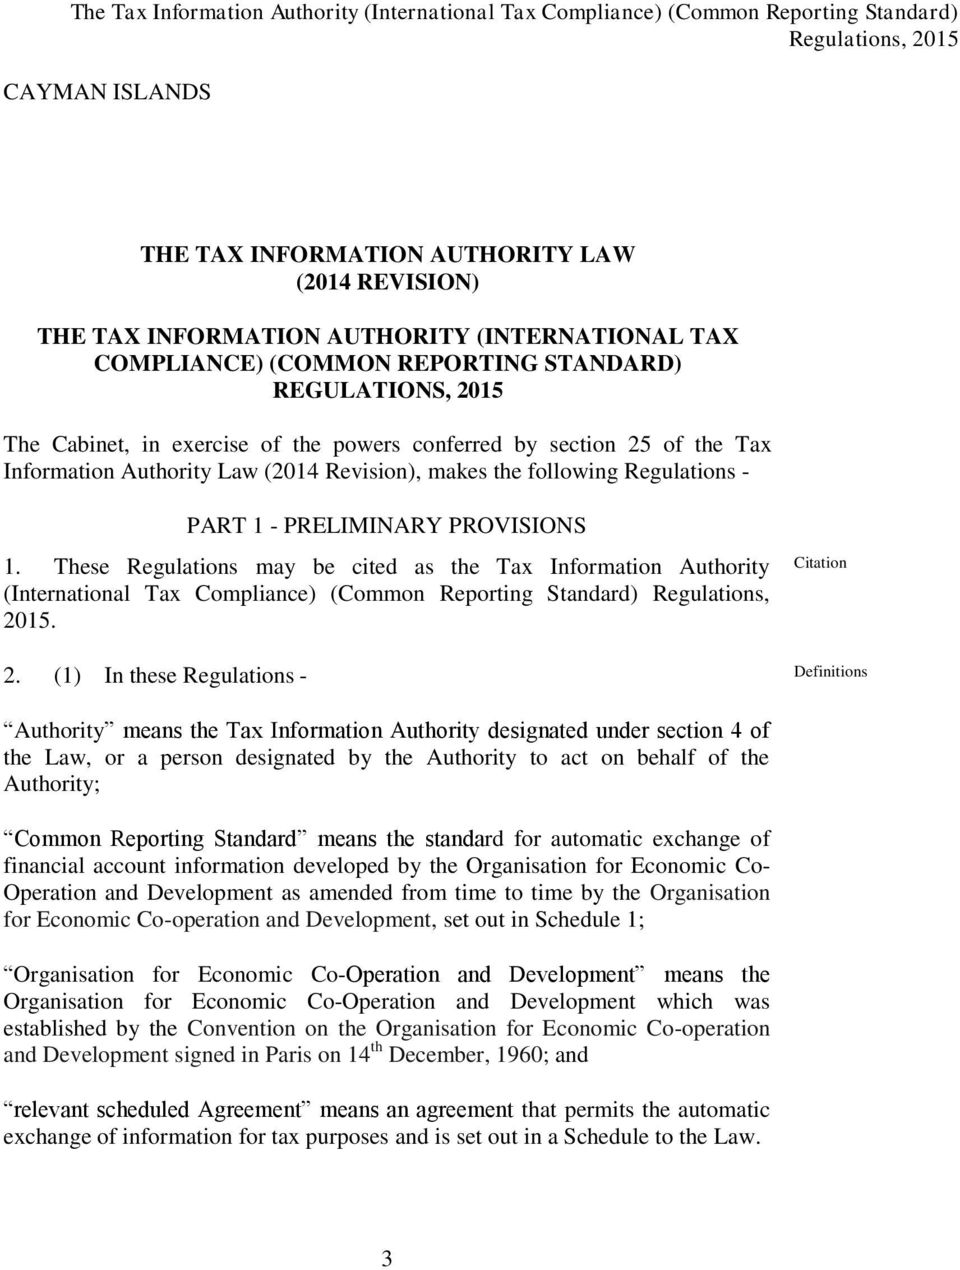 These Regulations may be cited as the Tax Information Authority (International Tax Compliance) (Common Reporting Standard) Regulations, 20